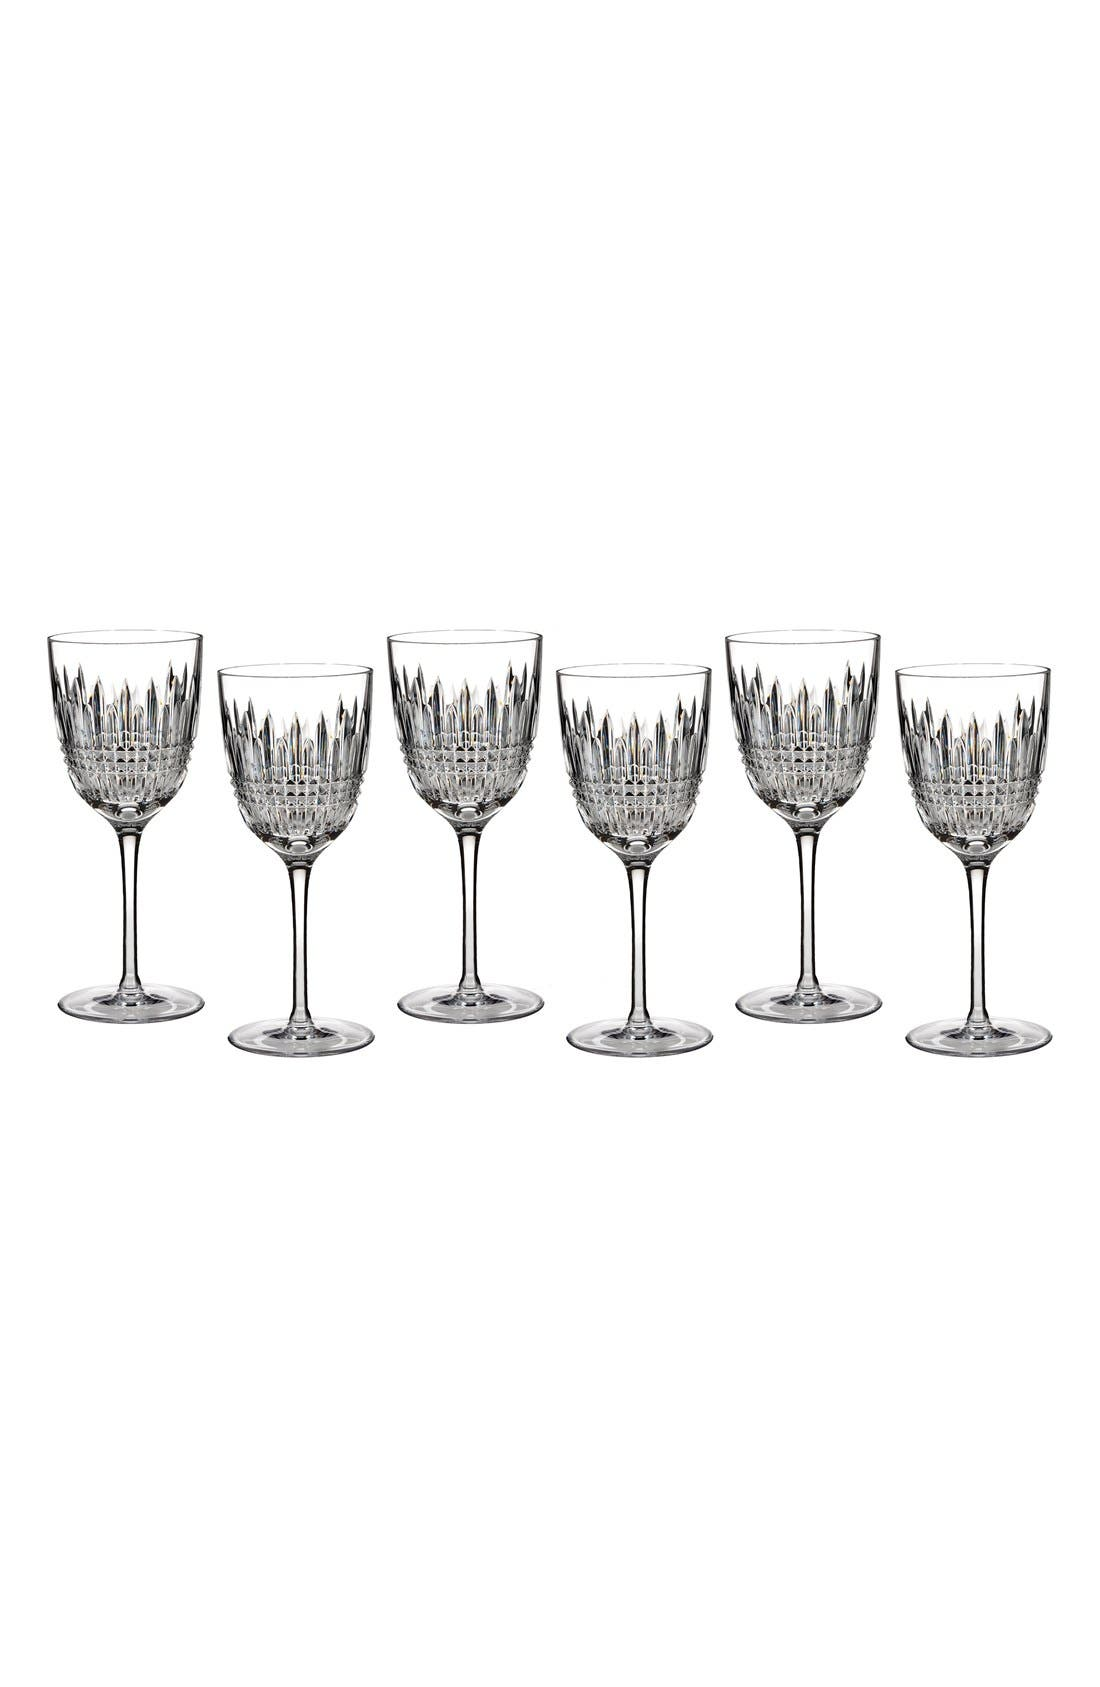 Waterford 'Lismore Diamond' Lead Crystal Goblets (Set of 6)